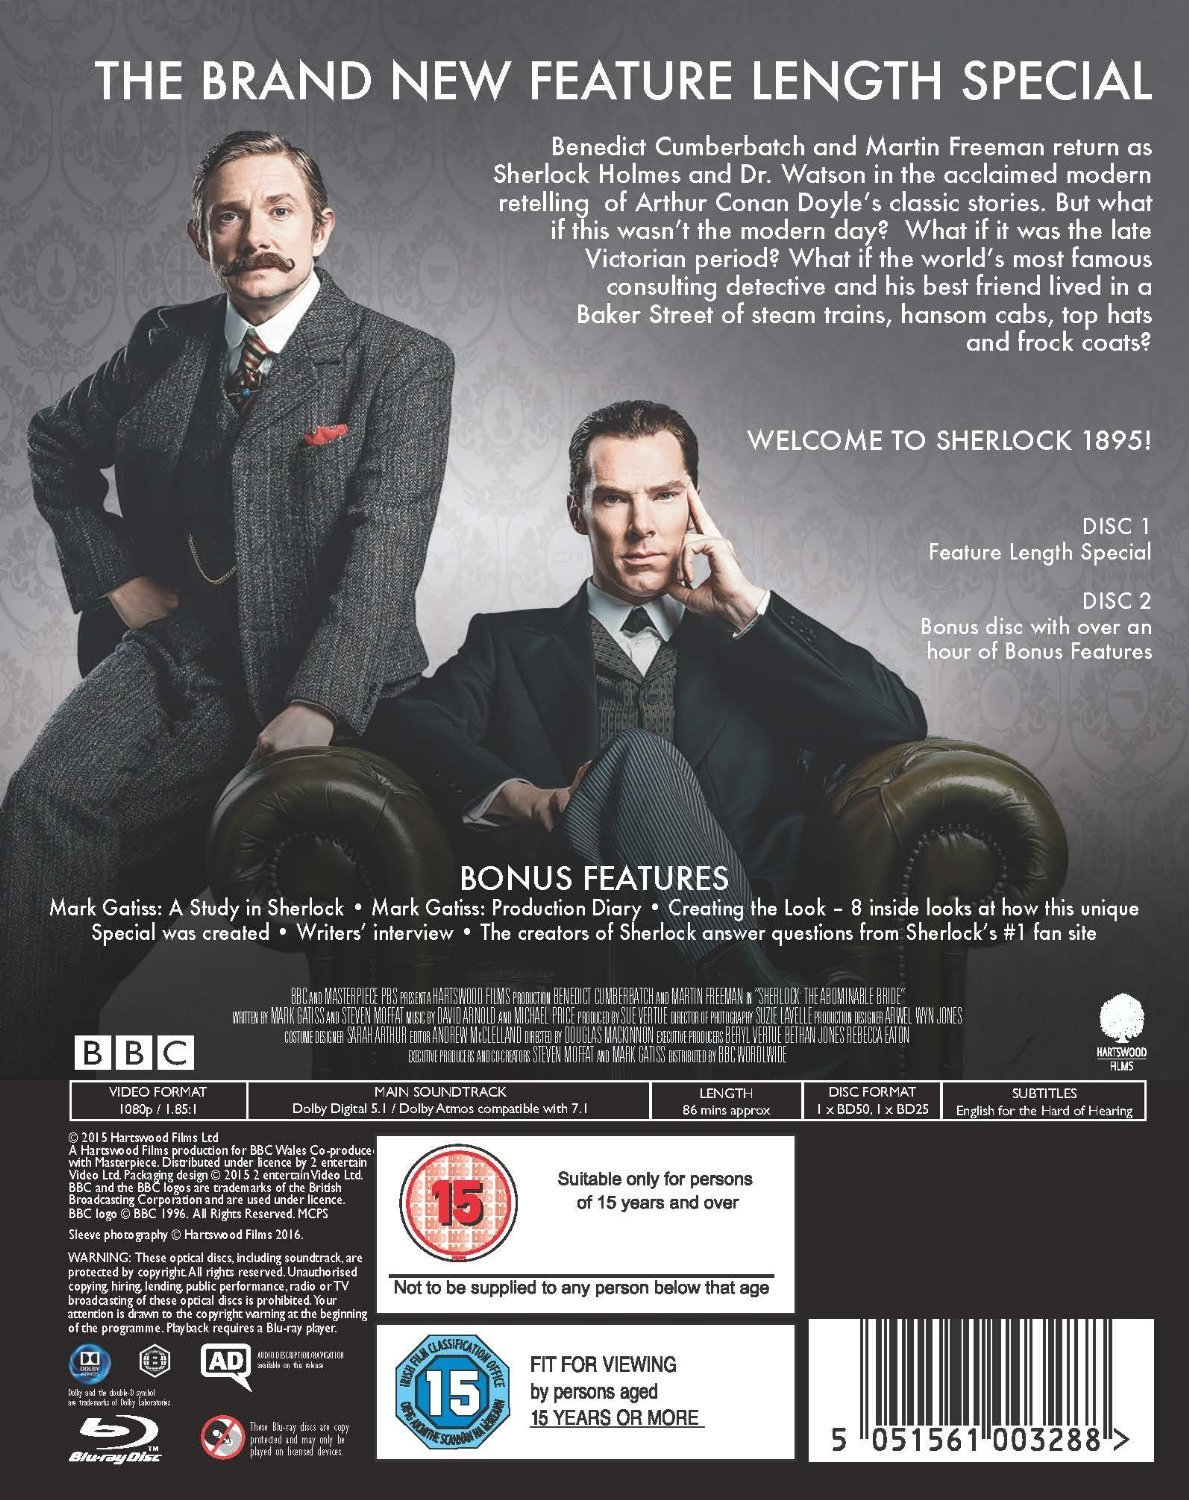 New BBC UK releases are 1080p and 24fps? - Blu-ray Forum